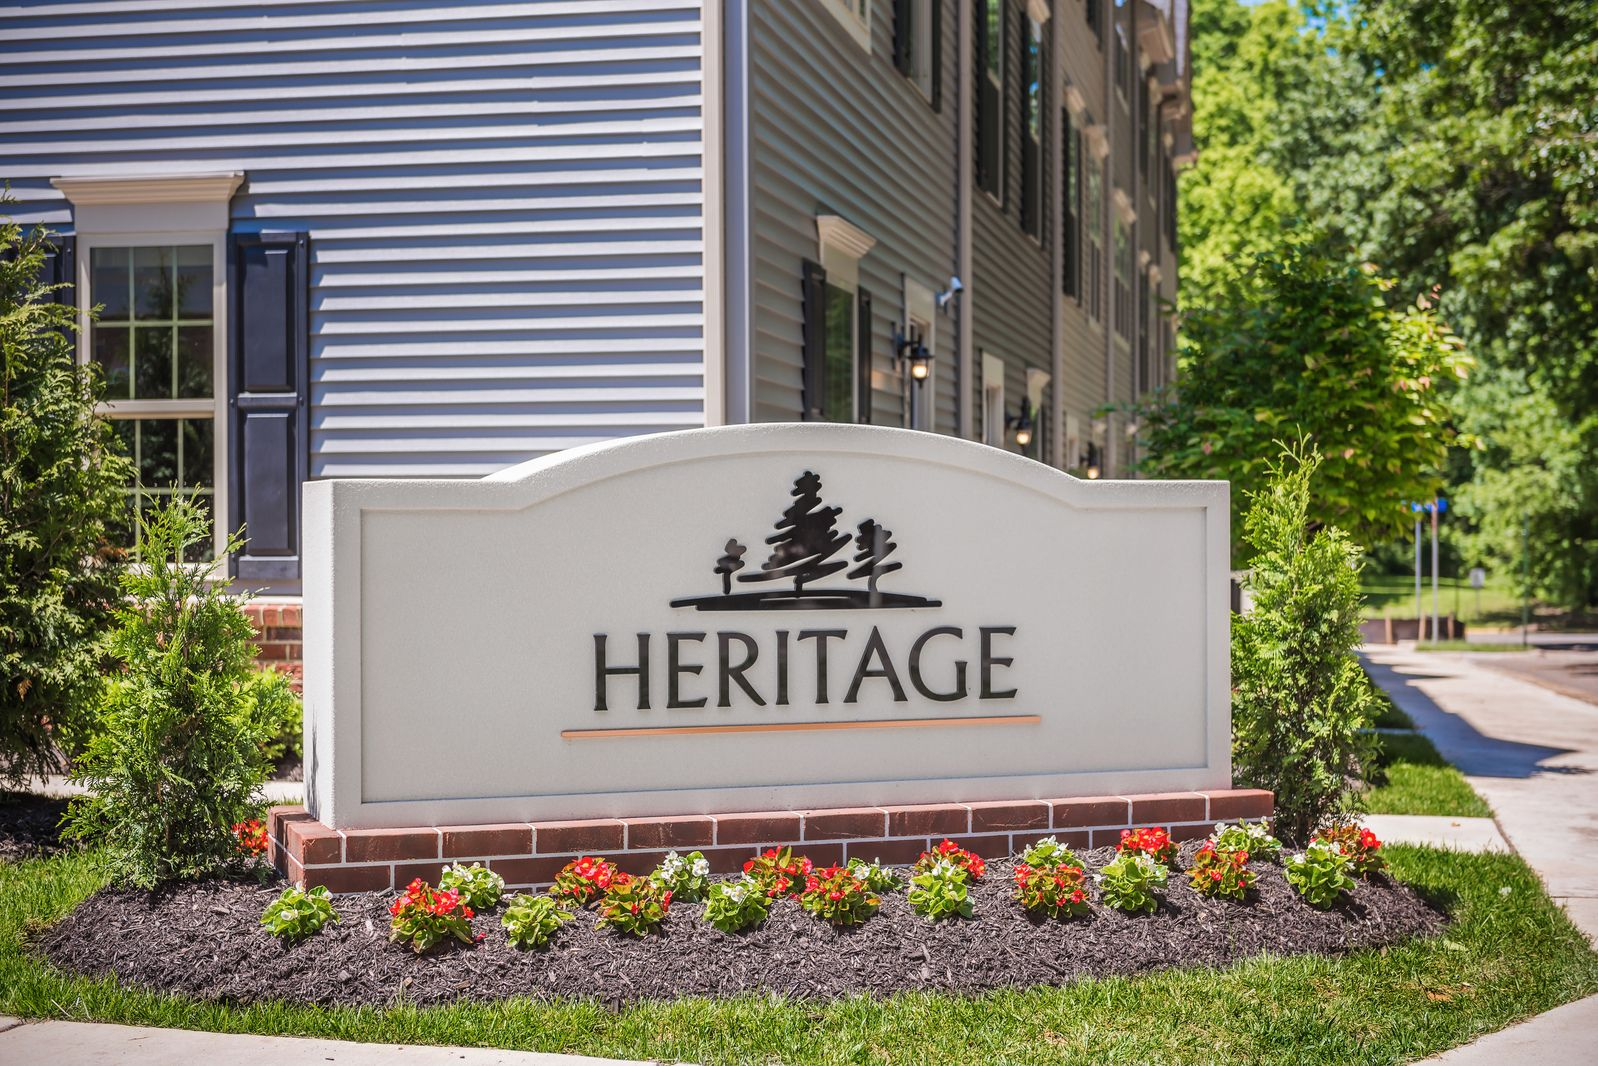 Welcome to Heritage, BRAND NEW TOWNHOMES INSIDE THE BELTWAY FROM THE LOW $600S!:Our new section is coming soon,Join the VIP List today for more information and the lowest pricing available!